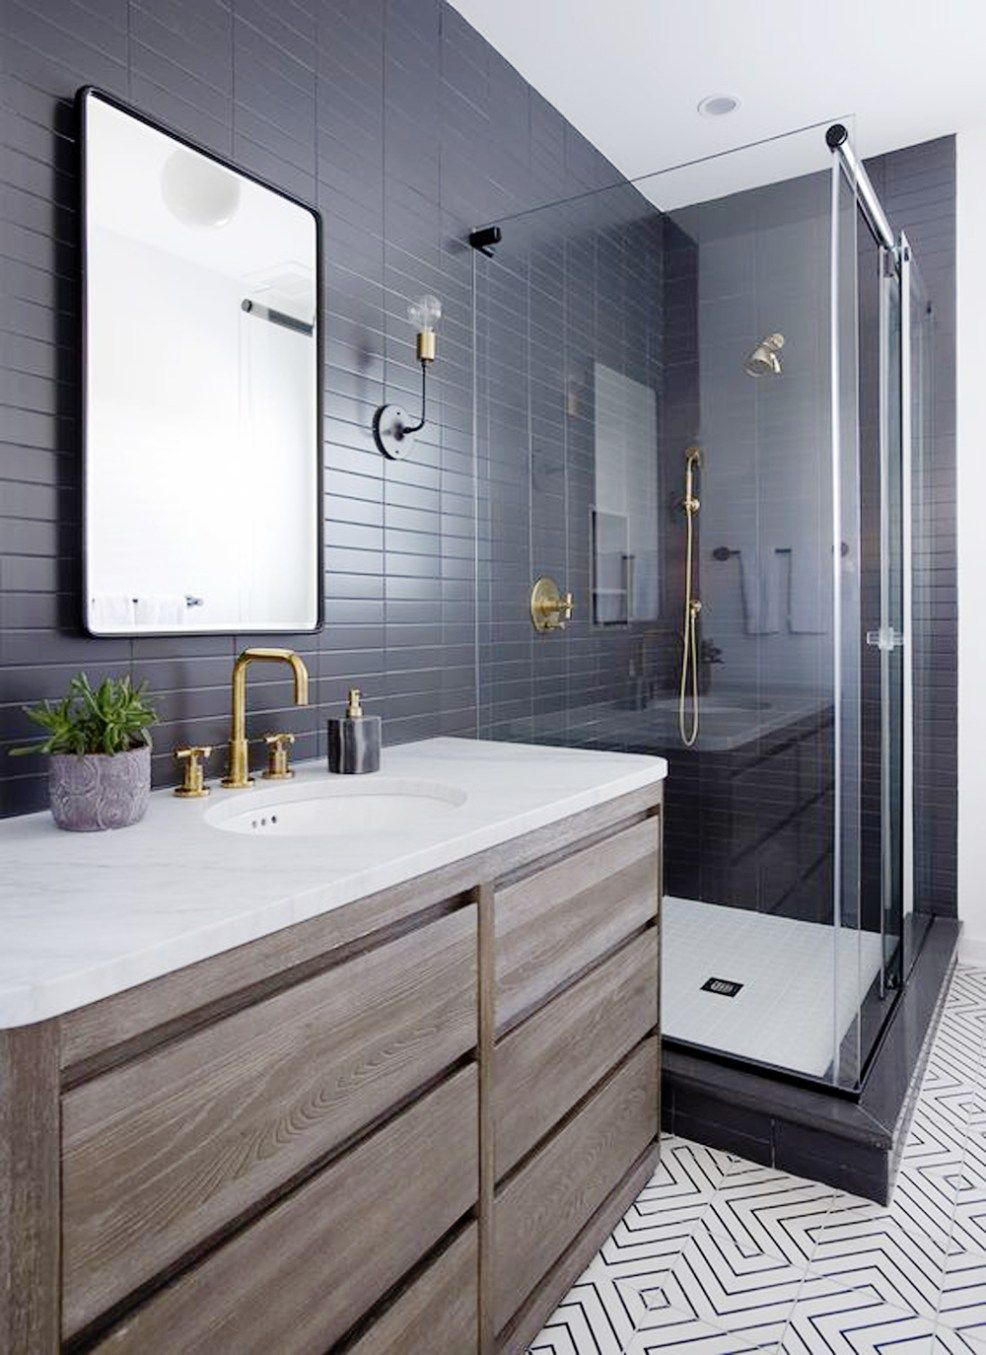 Where to buy cement tiles our favorites bathrooms - Where to buy bathroom accessories ...